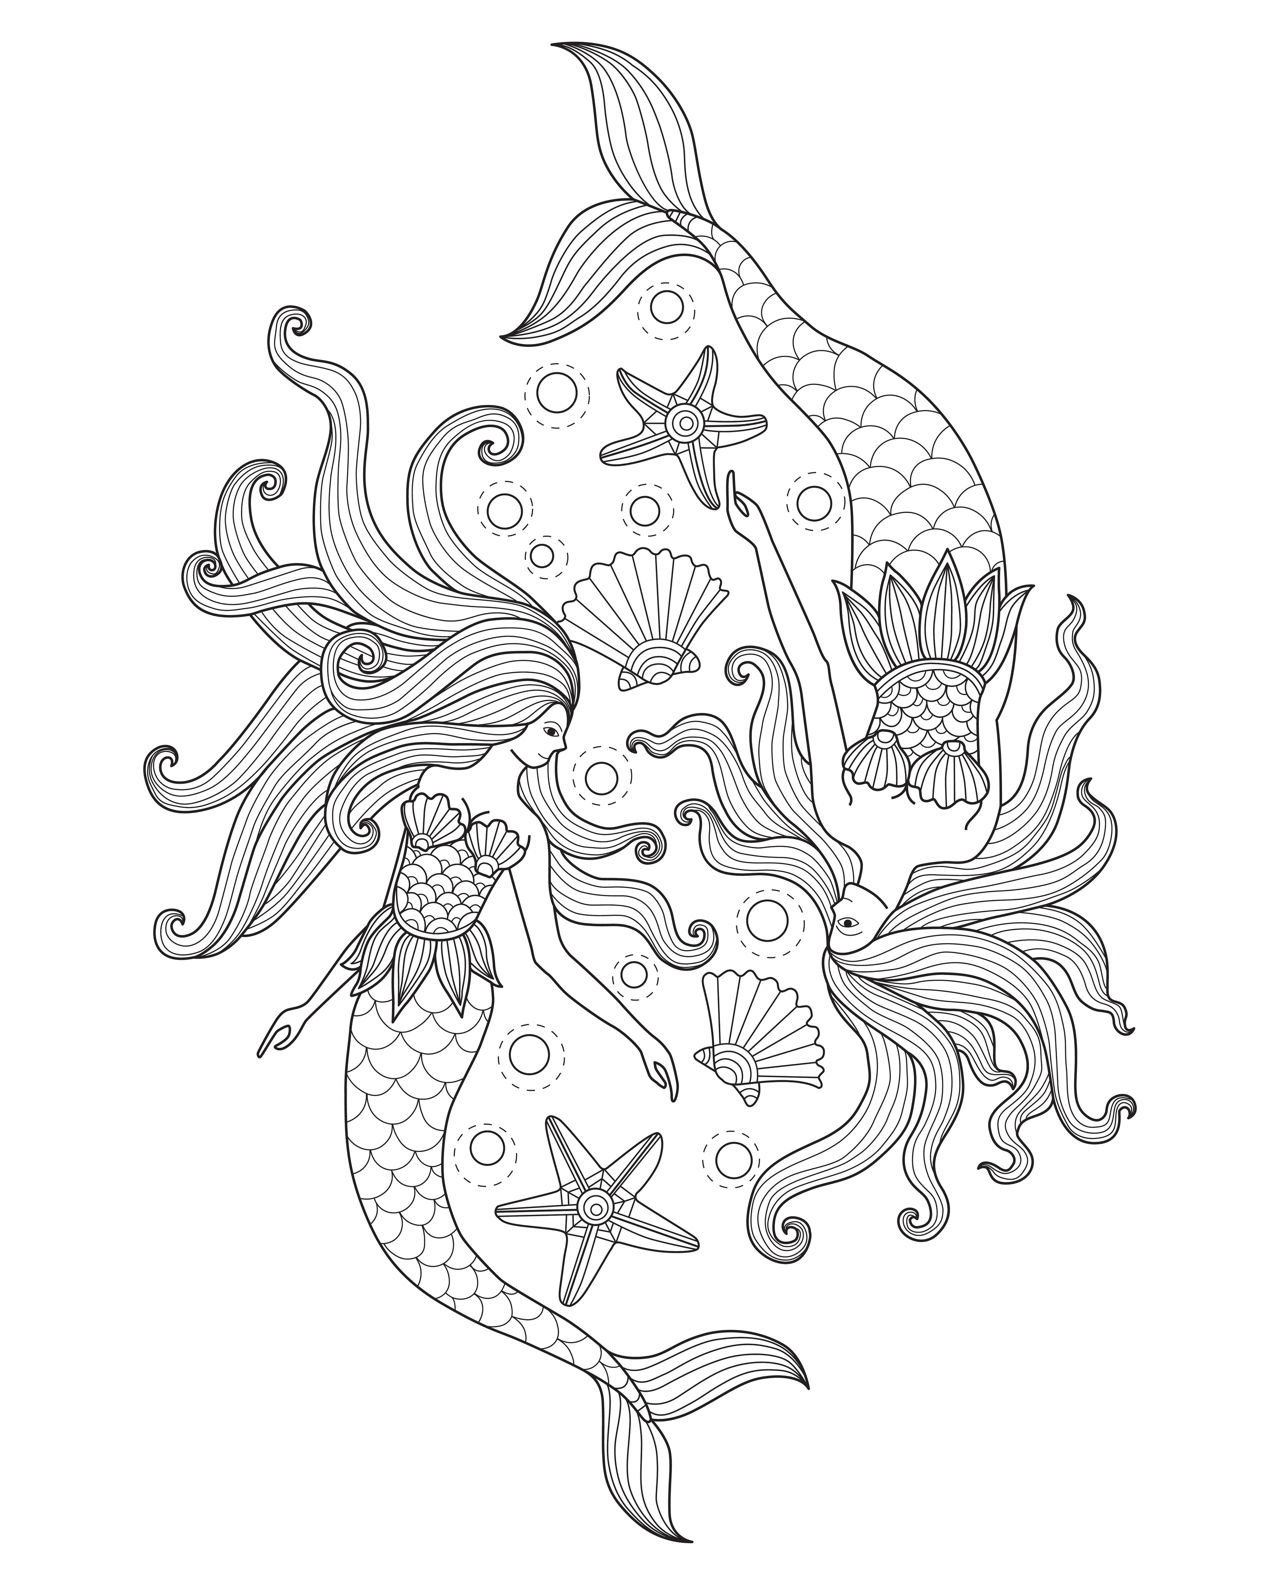 mermaid coloring images mermaid coloring pages free printable mermaid coloring pages mermaid images coloring